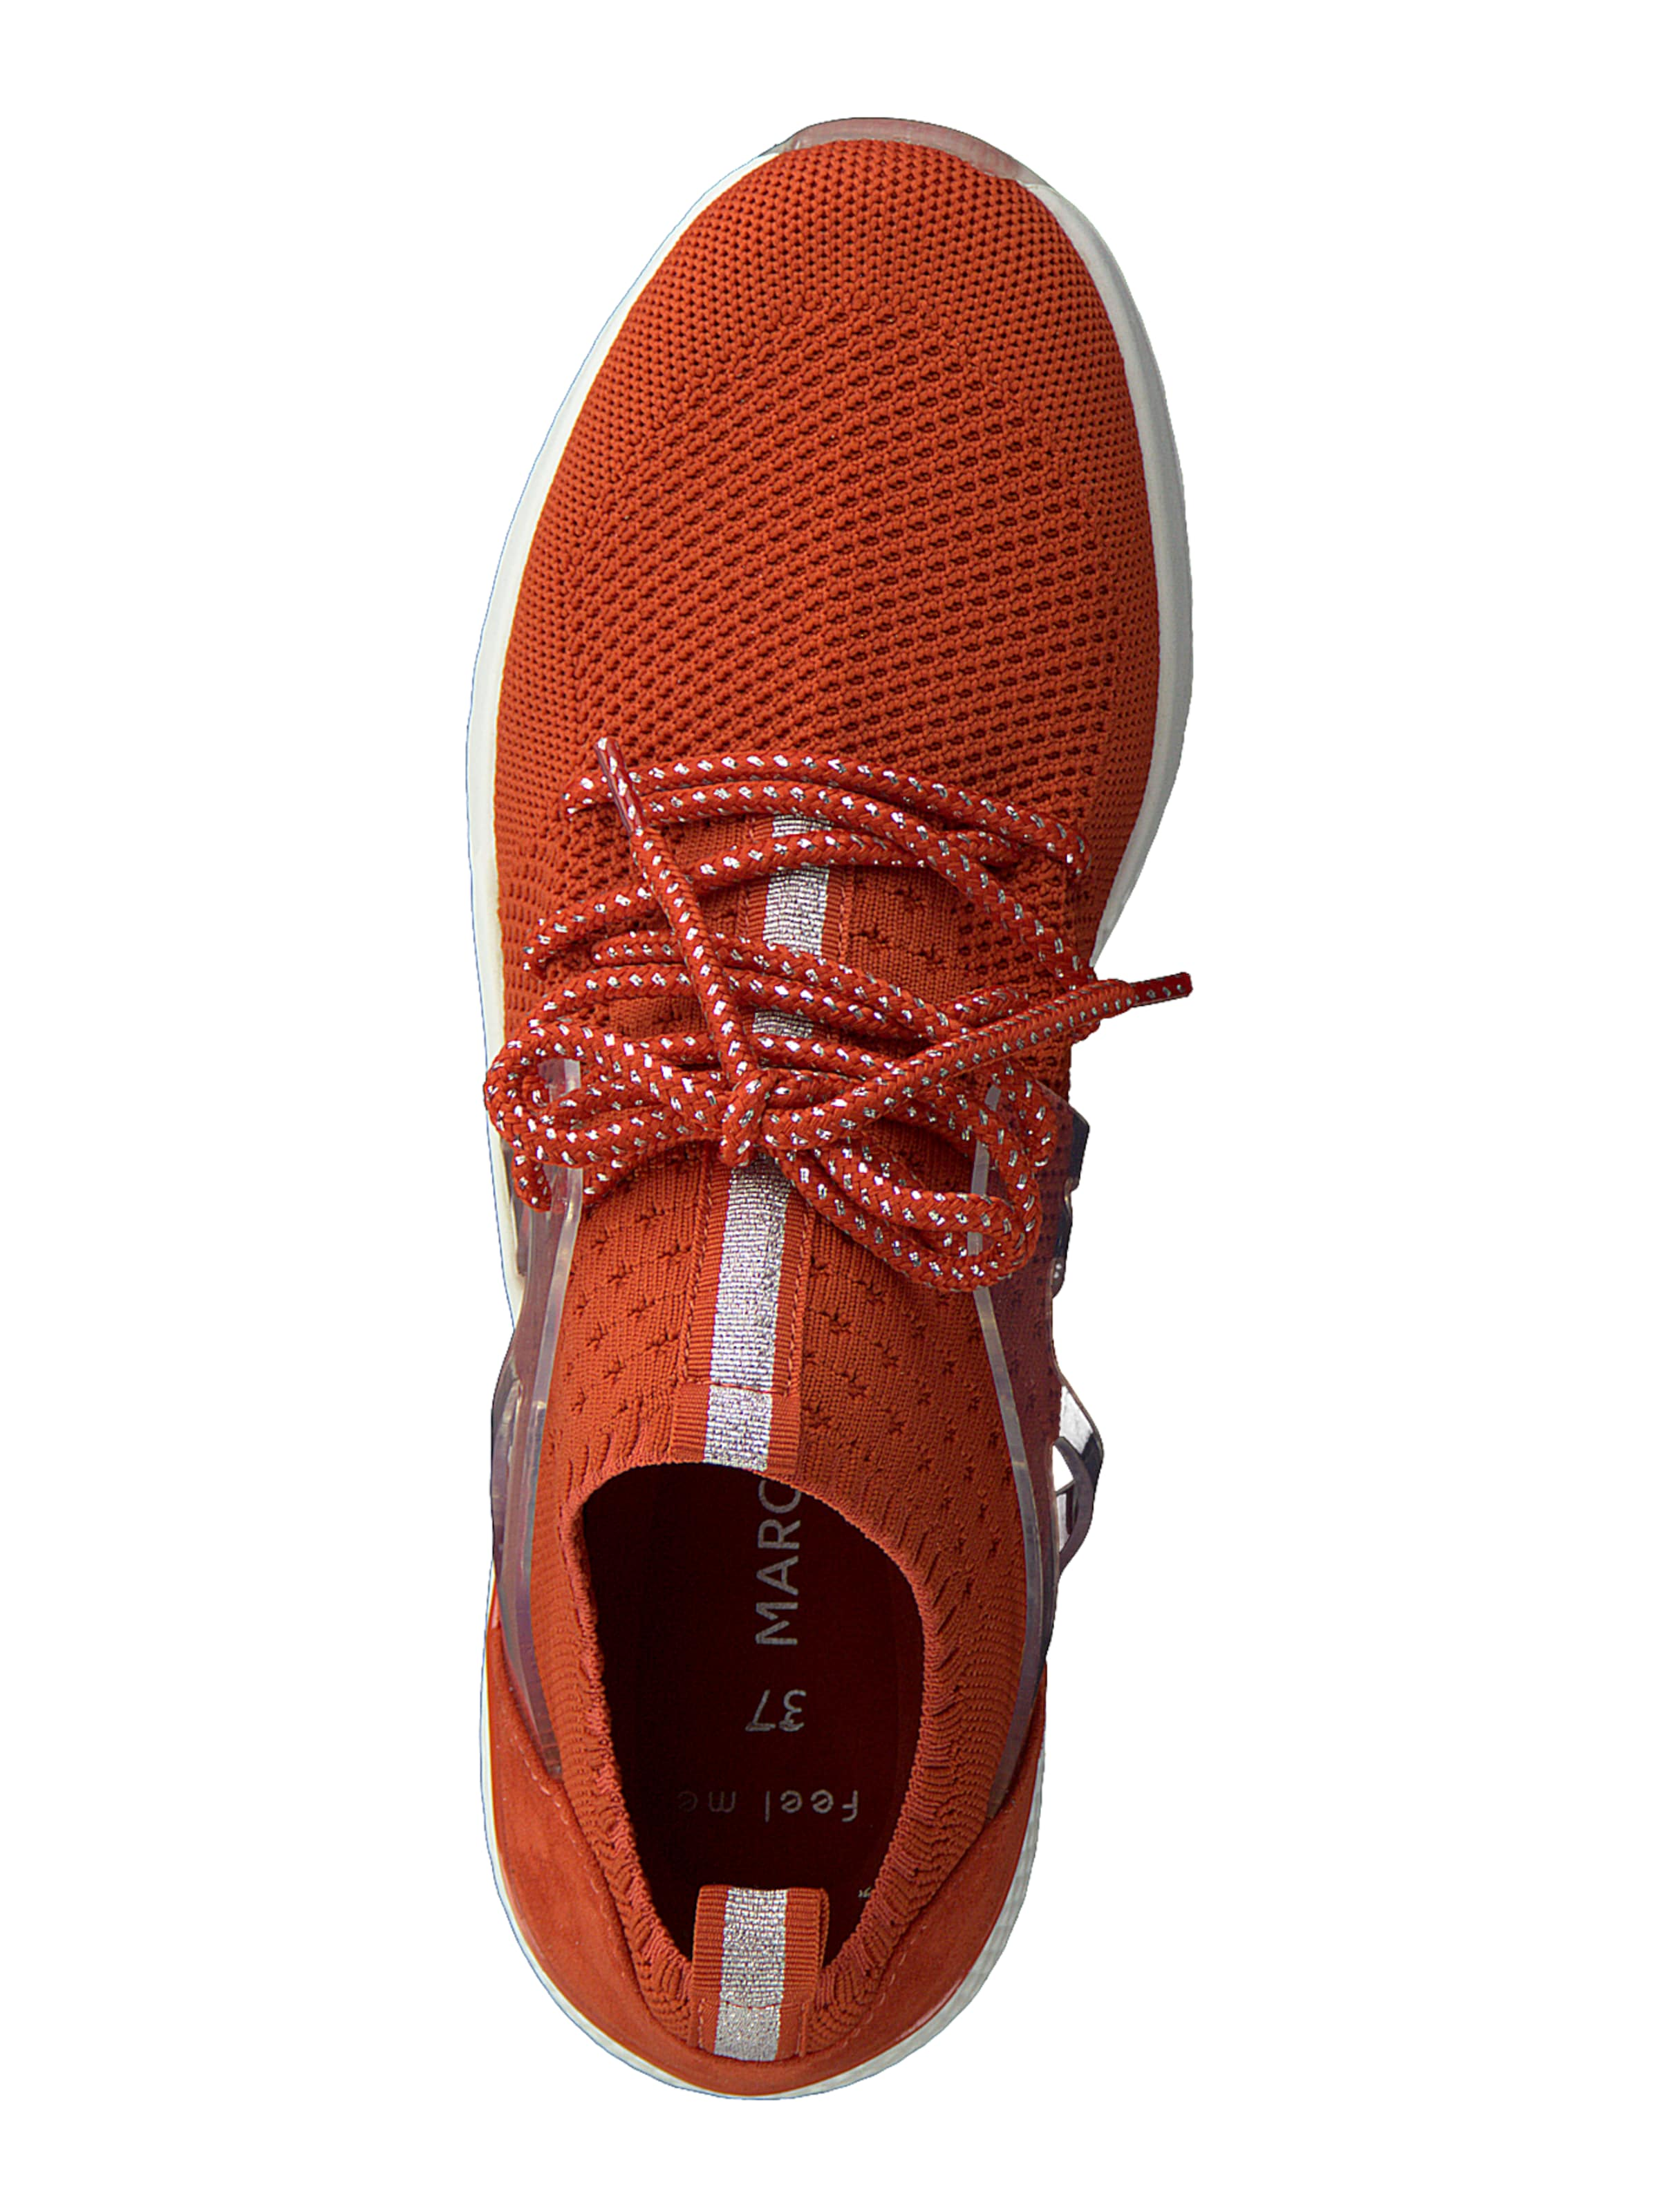 MARCO TOZZI Sneakers laag in Rood / Zilver Tong 2-2-23715-34-608-36